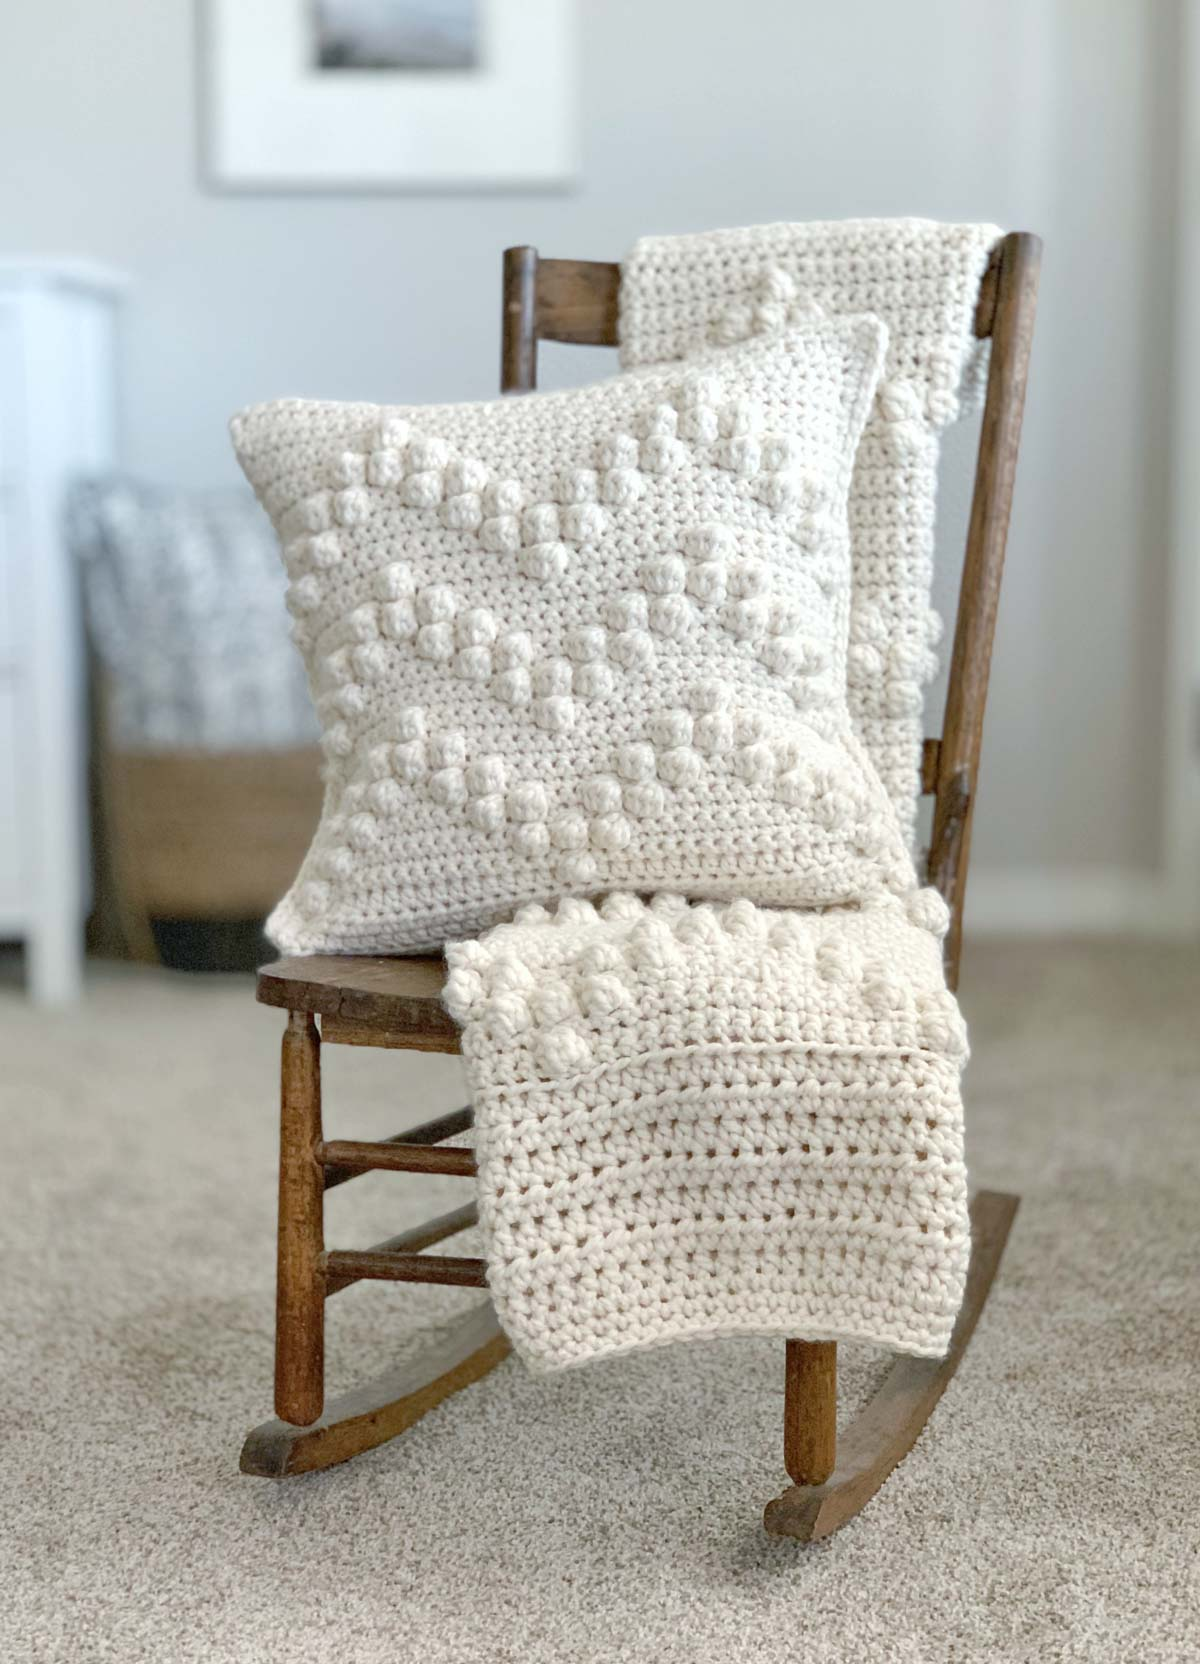 Cream colored crochet blanket and pillow on rocking chair.